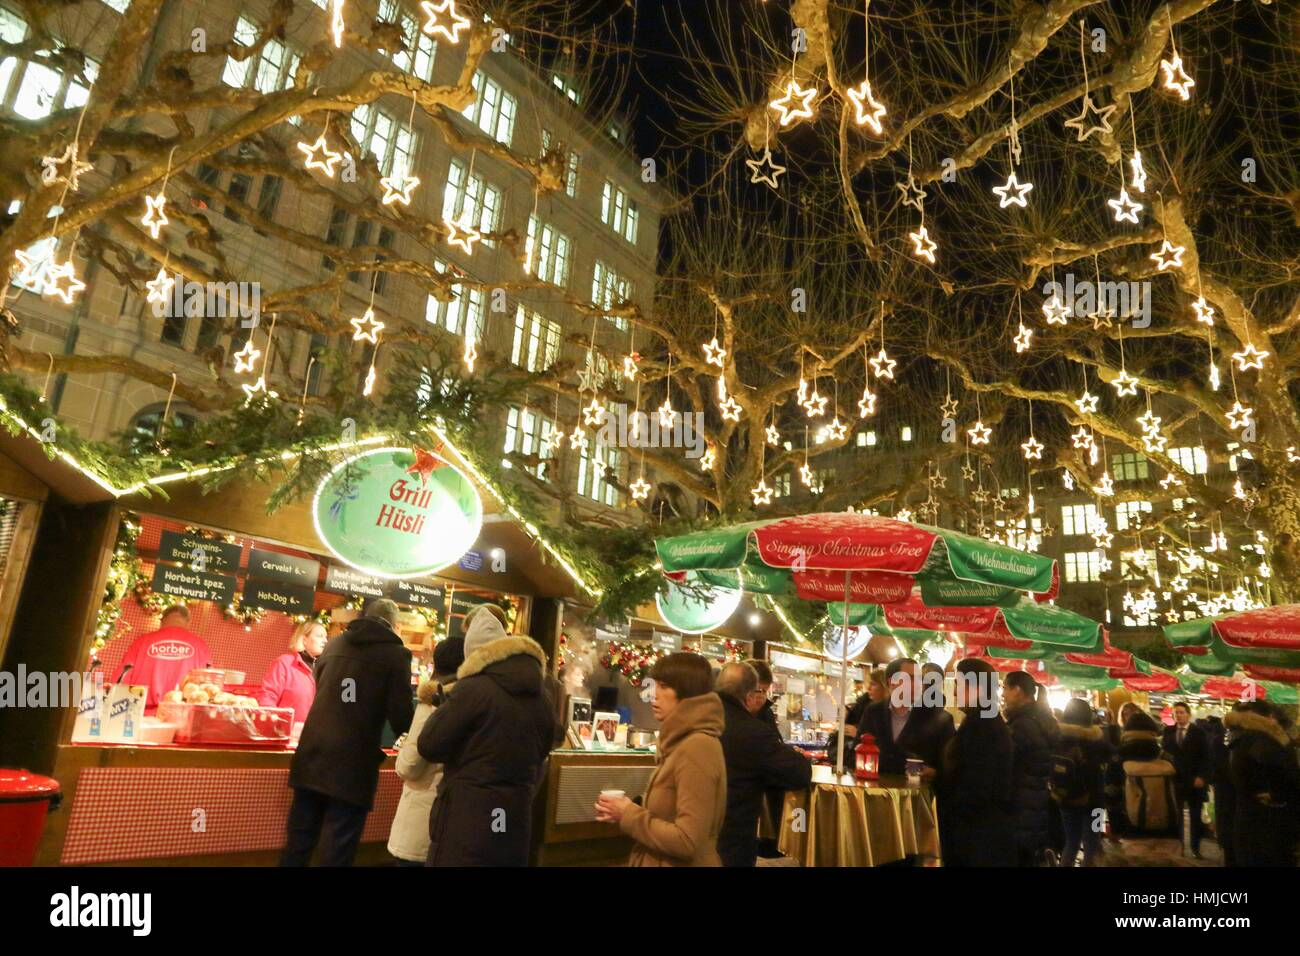 Zurich the old city on Christmas time on December 7, 2015. - Stock Image